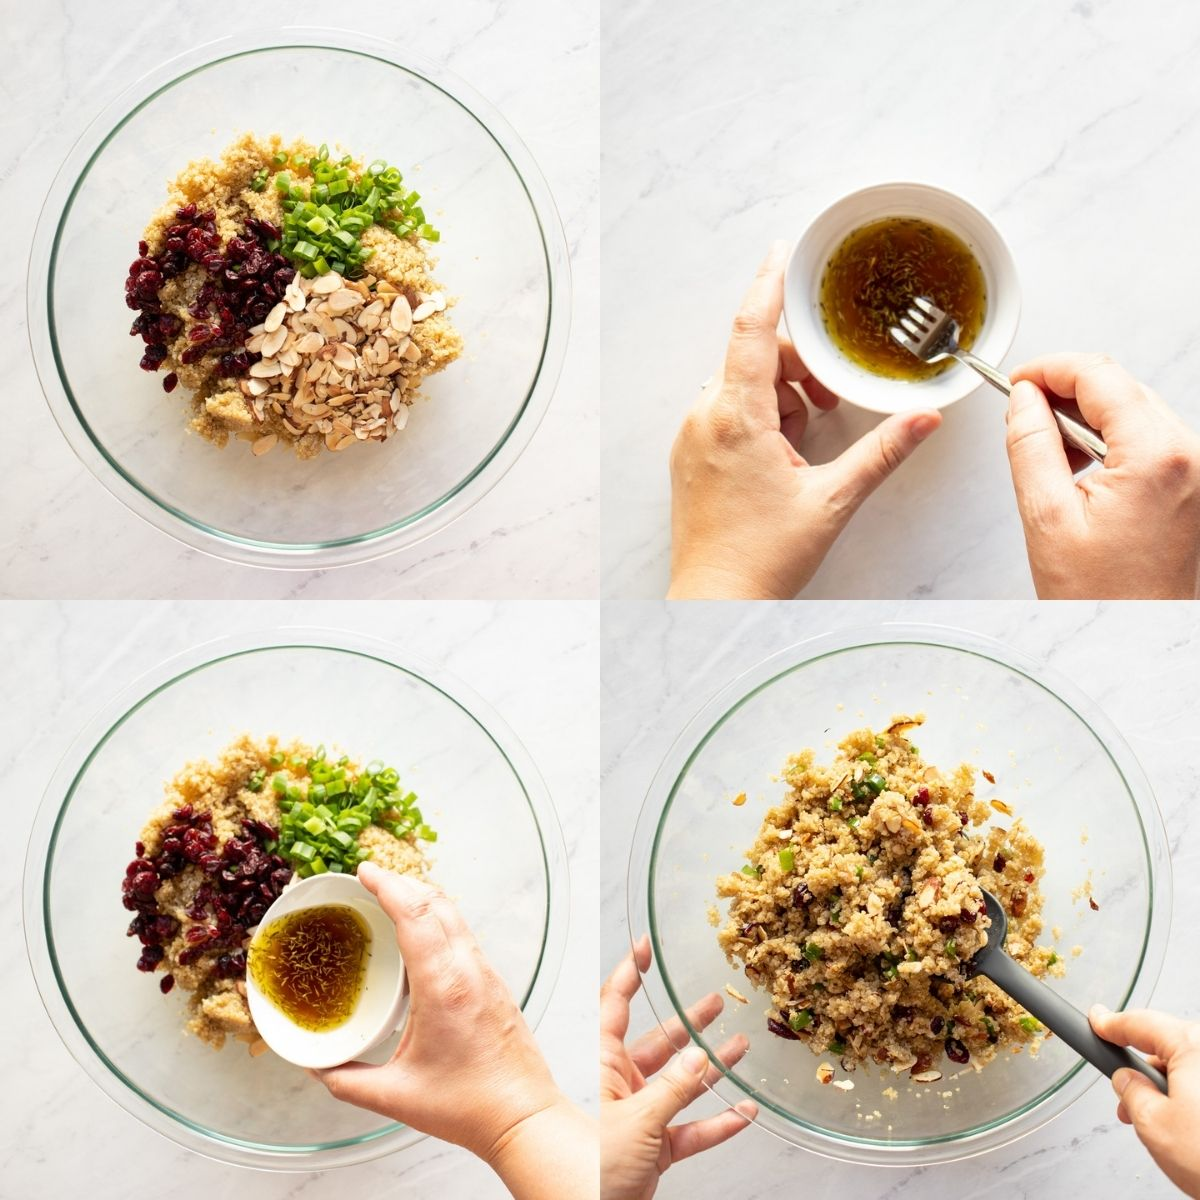 Four photos in one showing the assembly of quinoa salad with cranberries and almonds. The first photo shows the salad ingredients being added to a bowl. In the second, the dressing is being whisked. In the third, the salad dressing is being added to the salad. And in the fourth, the quinoa salad is being mixed.